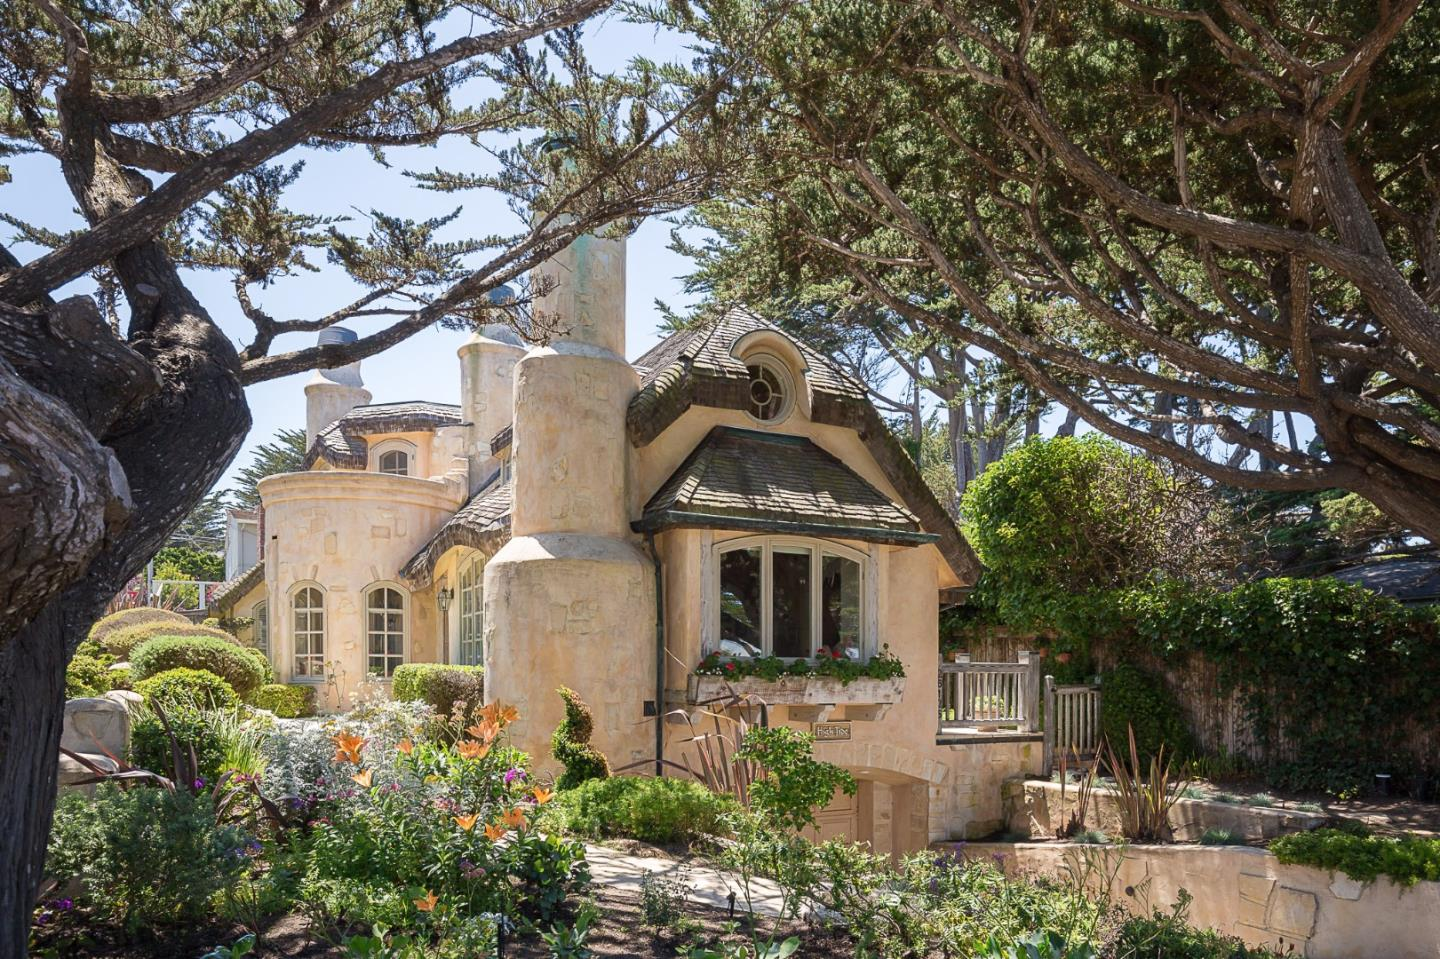 Storybook Cottage in Carmel Is A Dream Come True just steps from Carmel Beach for sale. Two bedrooms and two baths